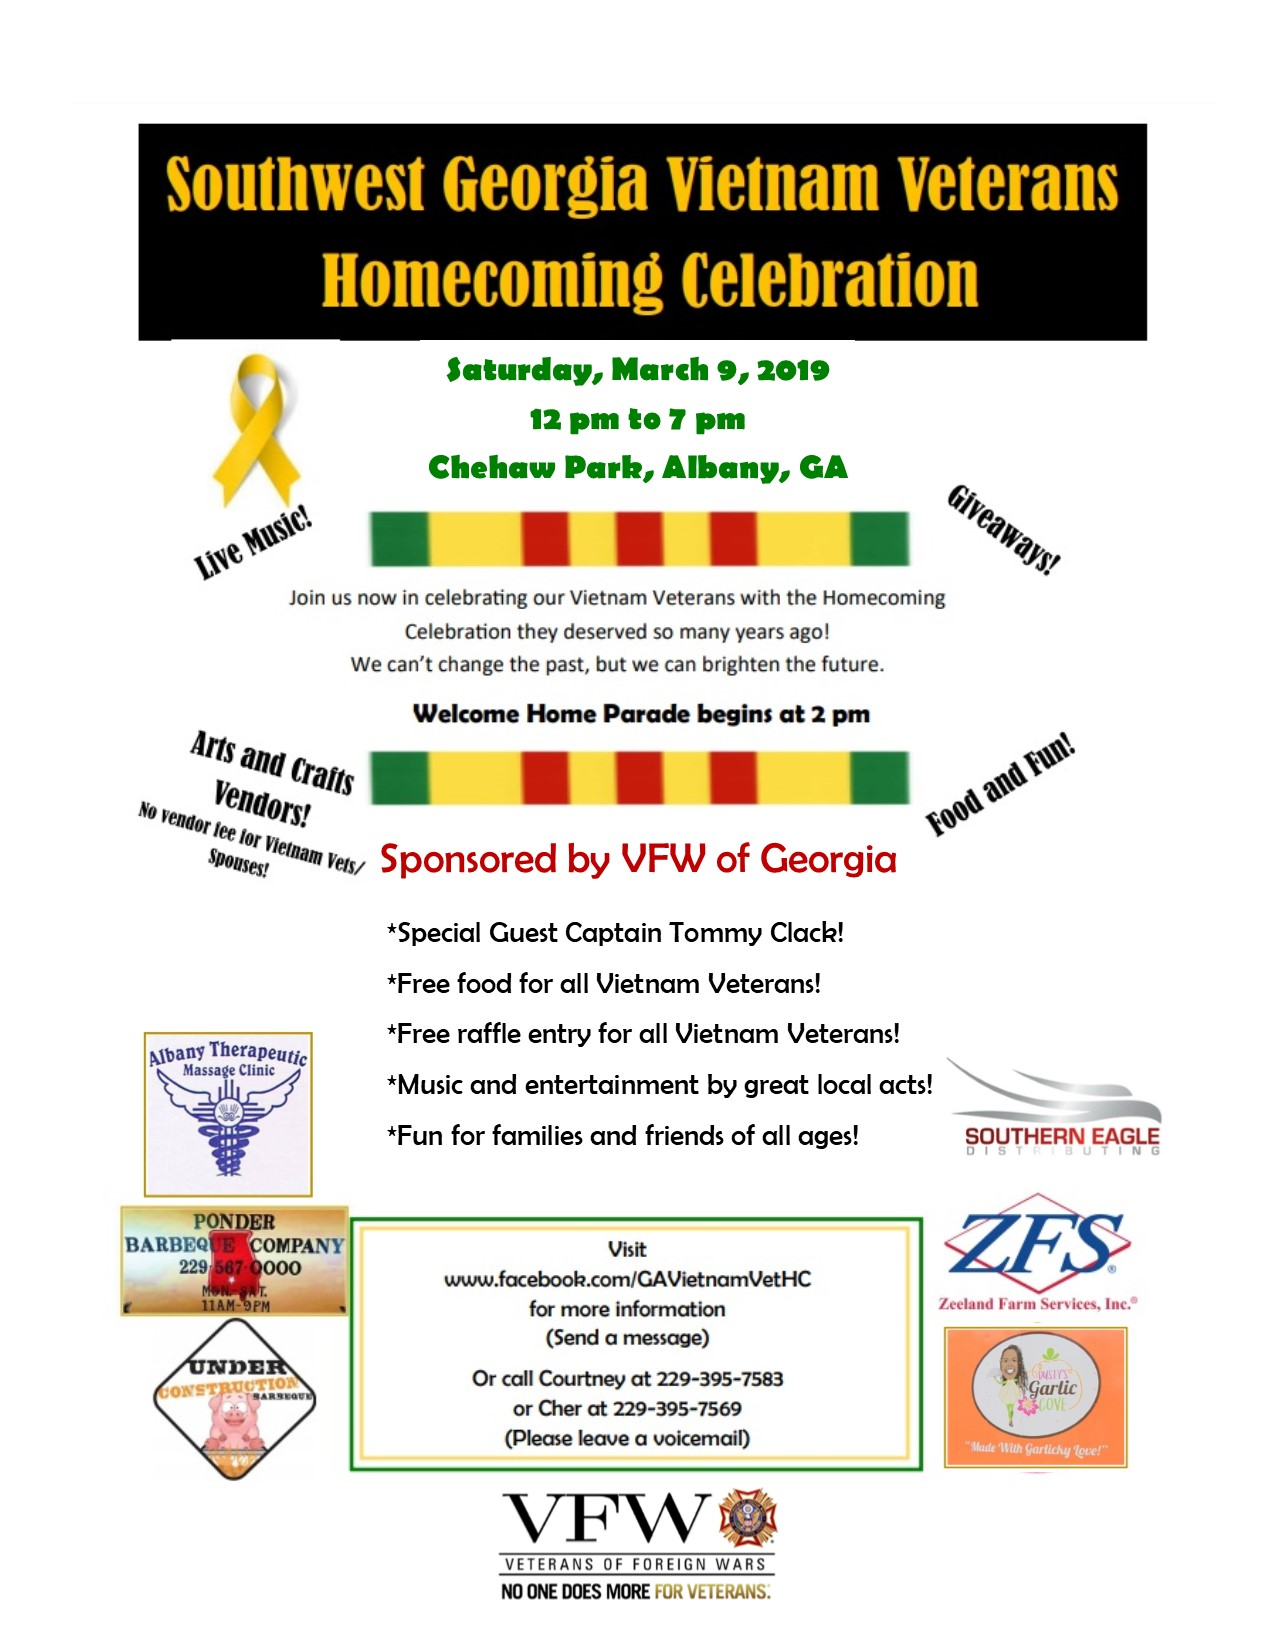 South Georgia Vietnam Veterans Homecoming Celebration